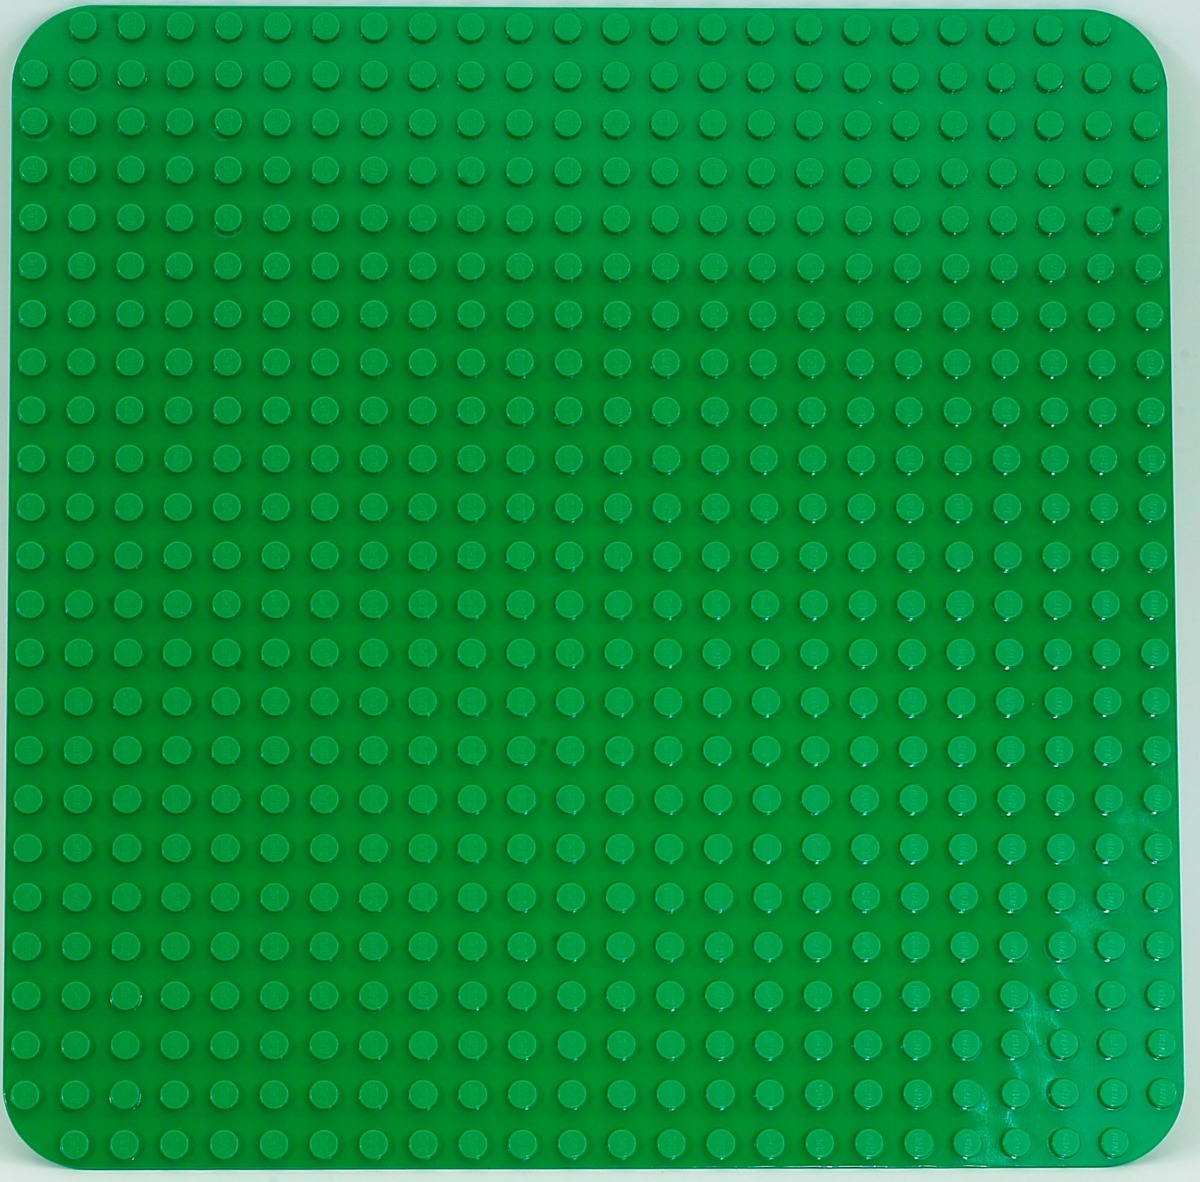 duplo 2304 large green building plate scaled